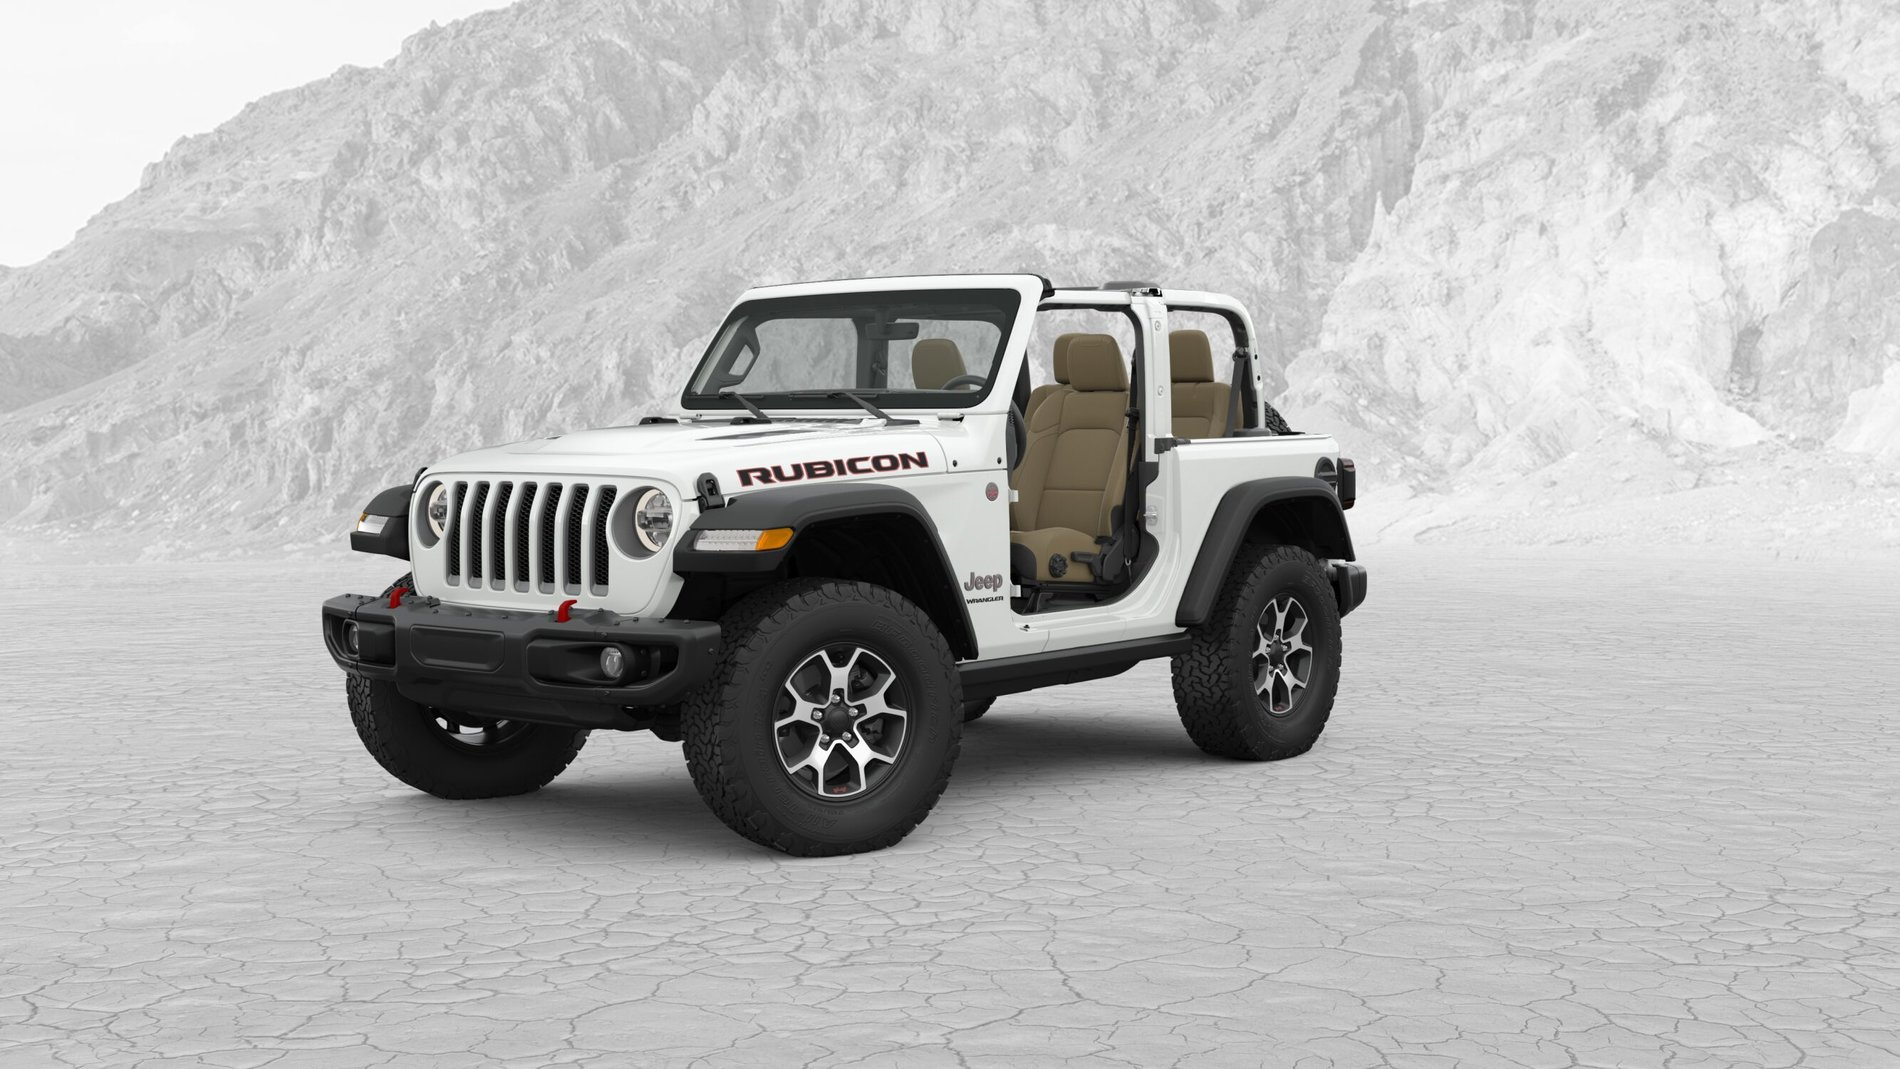 jl wrangler build and price configurator now available on page 11 2018 jeep. Black Bedroom Furniture Sets. Home Design Ideas